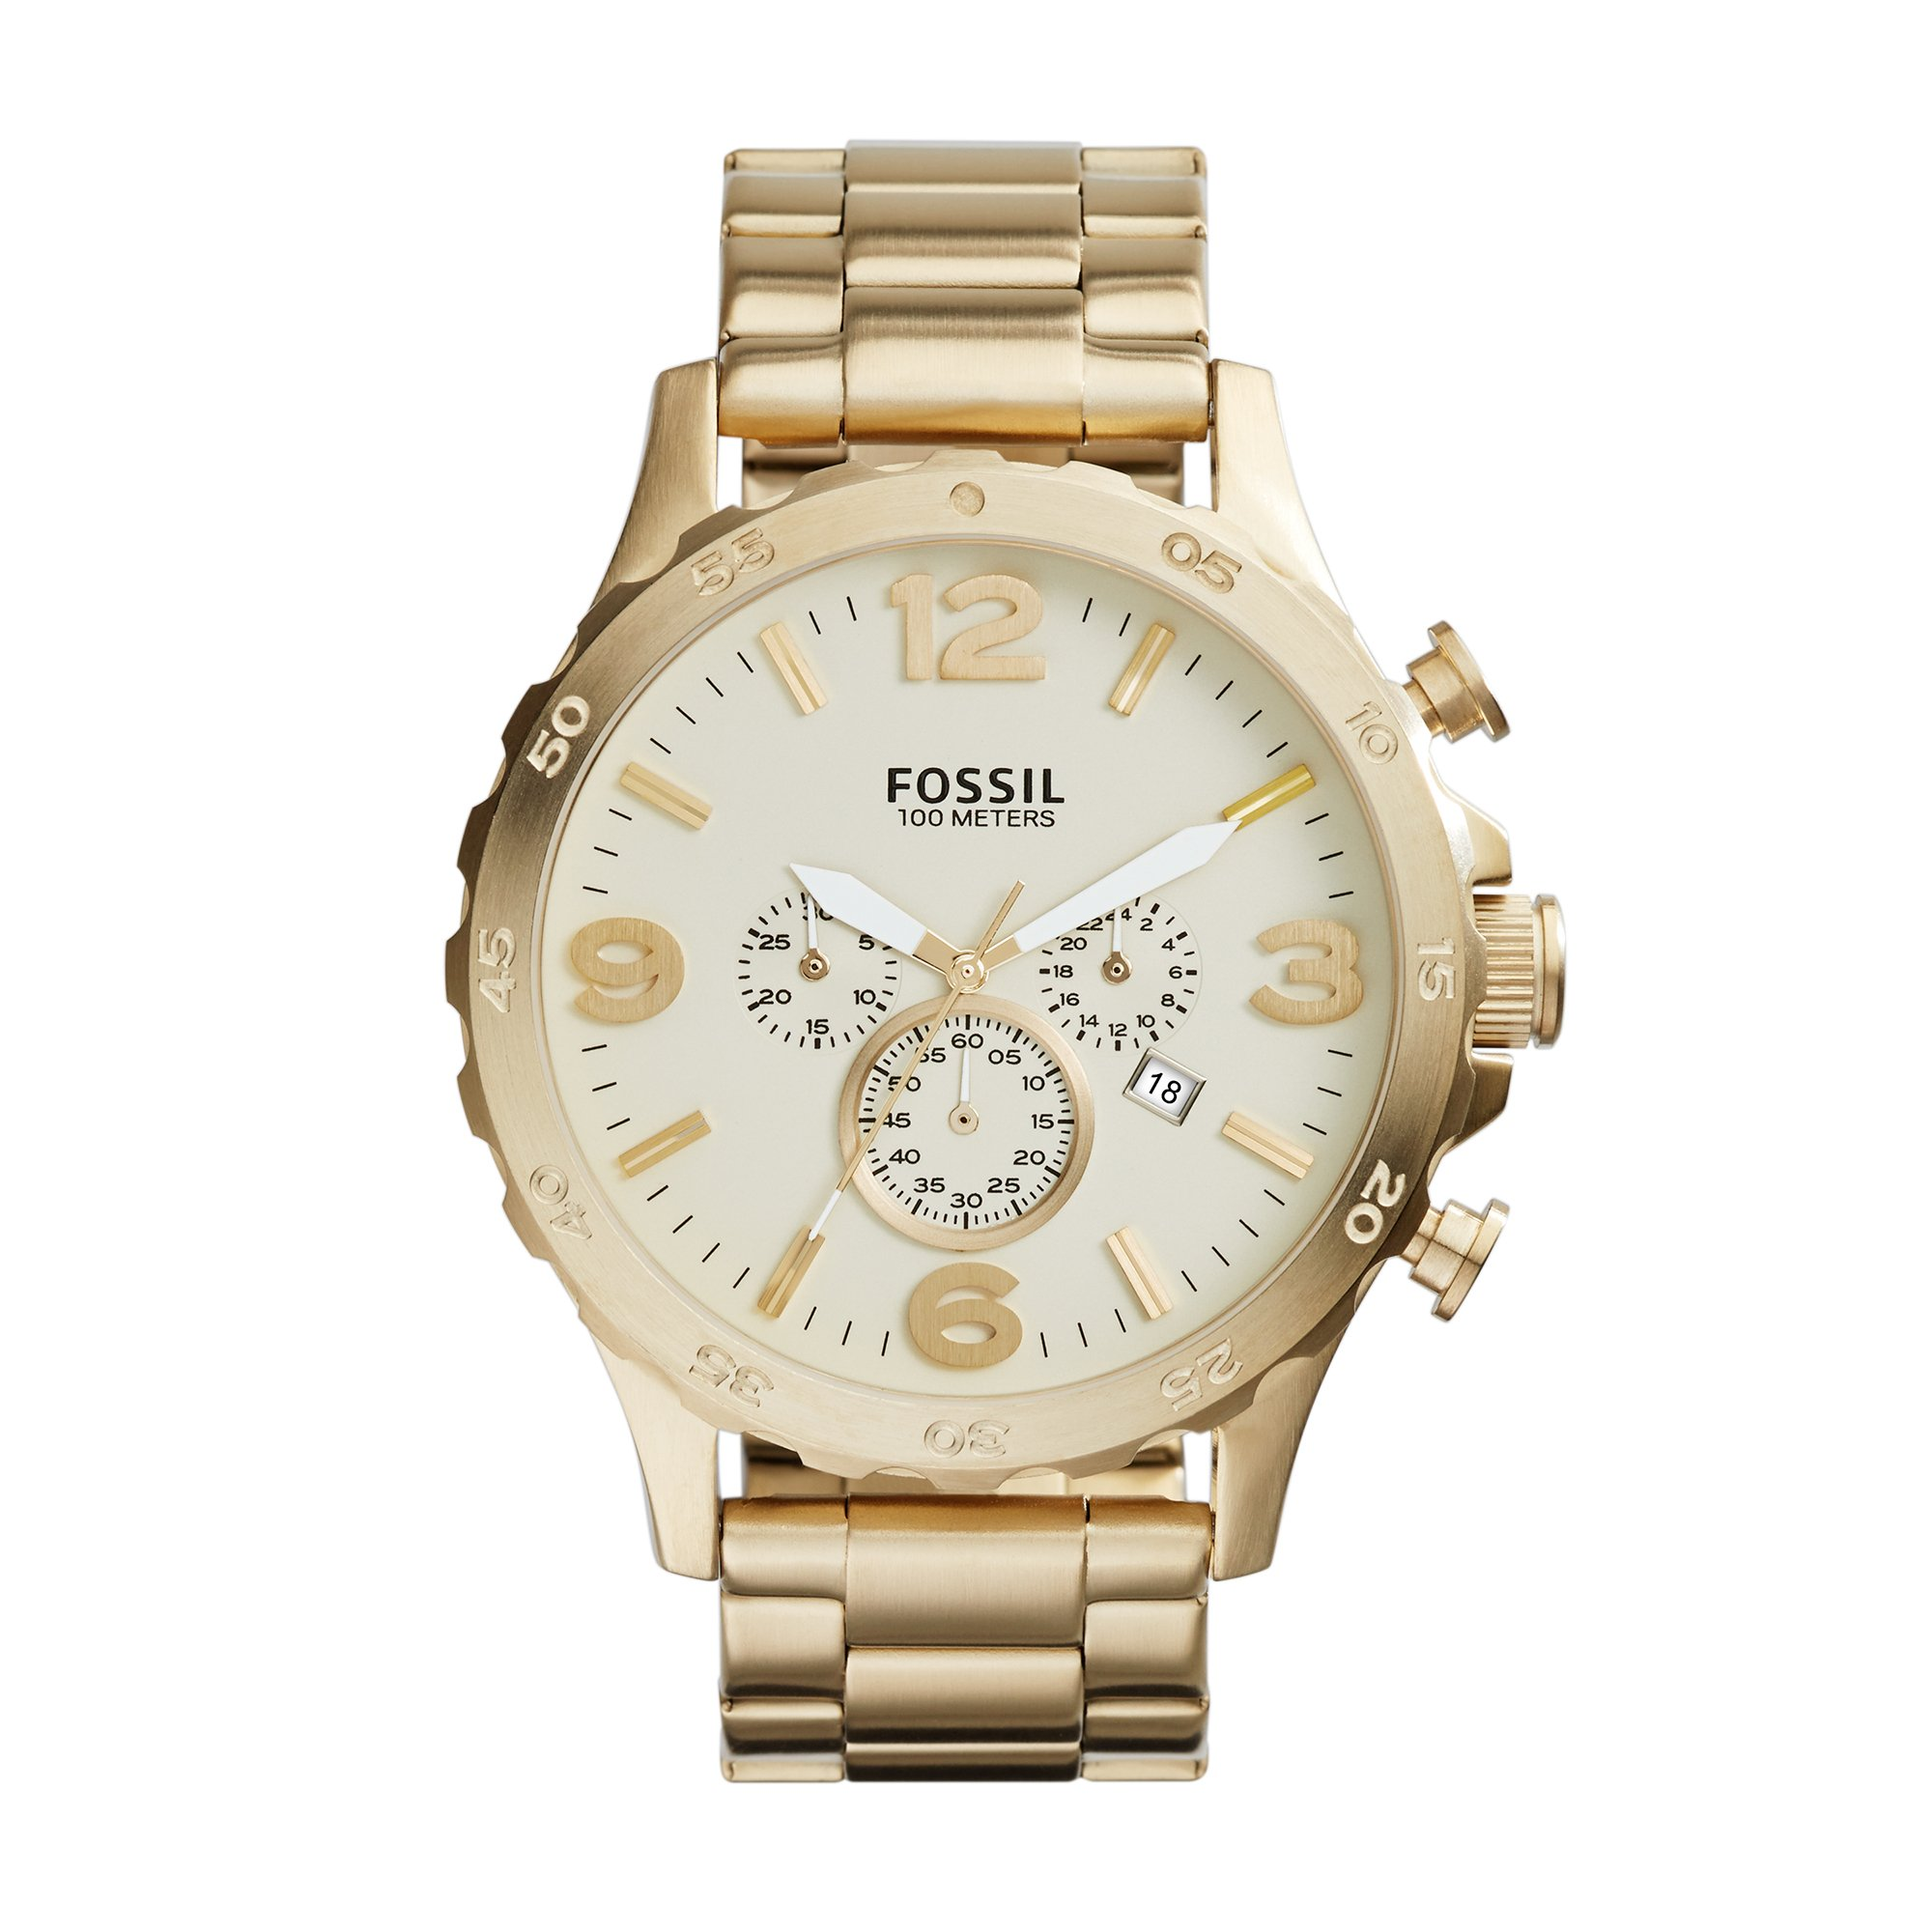 04a17ba16c20 relojes fossil sears .